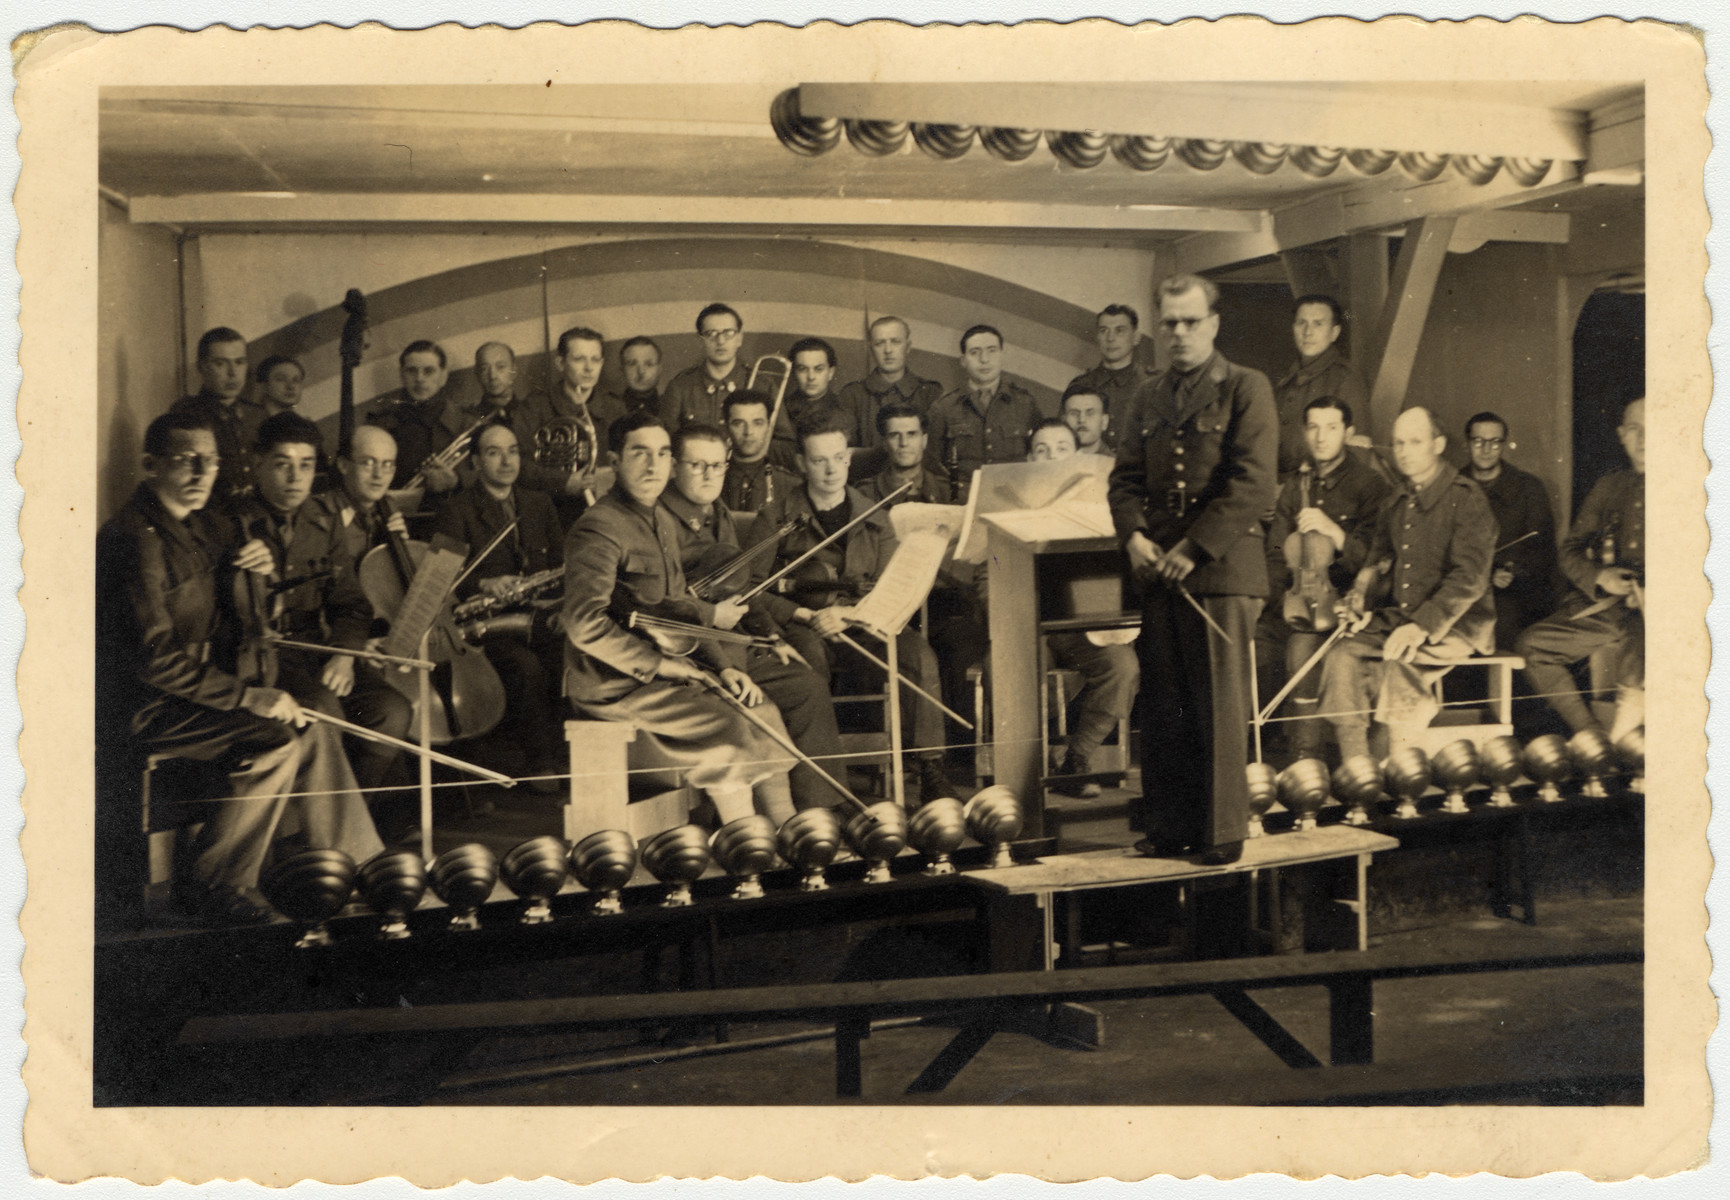 Ferdinand Carrion, a Belgian musician and prisoner-of-war, conducts the prisoner's orchestra in Stalag VIII-A.  Max Beker, a Jewish POW from Vilna, is the concertmaster.